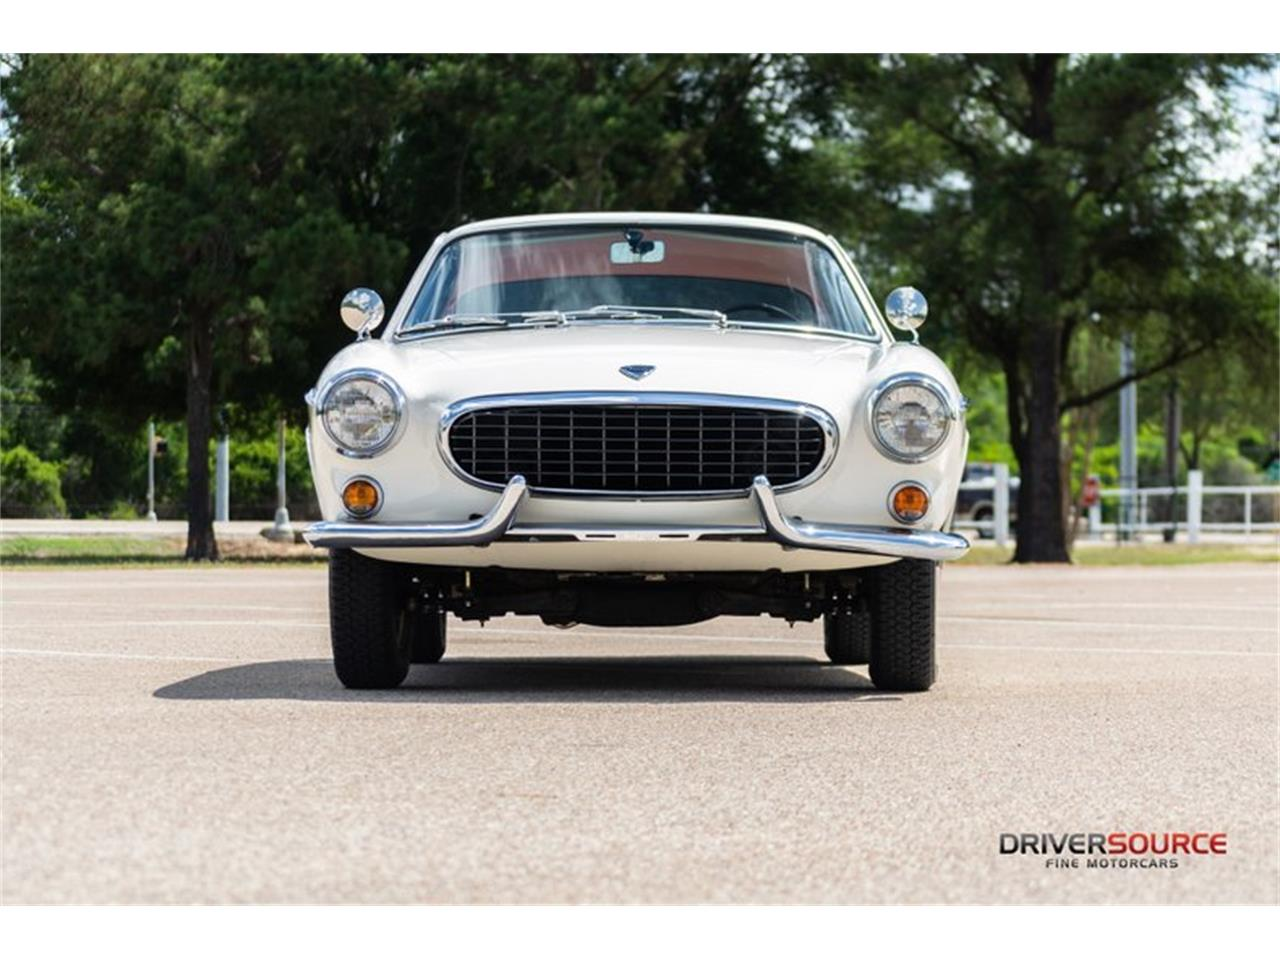 Large Picture of 1964 Volvo P1800E - $49,250.00 - NNM3